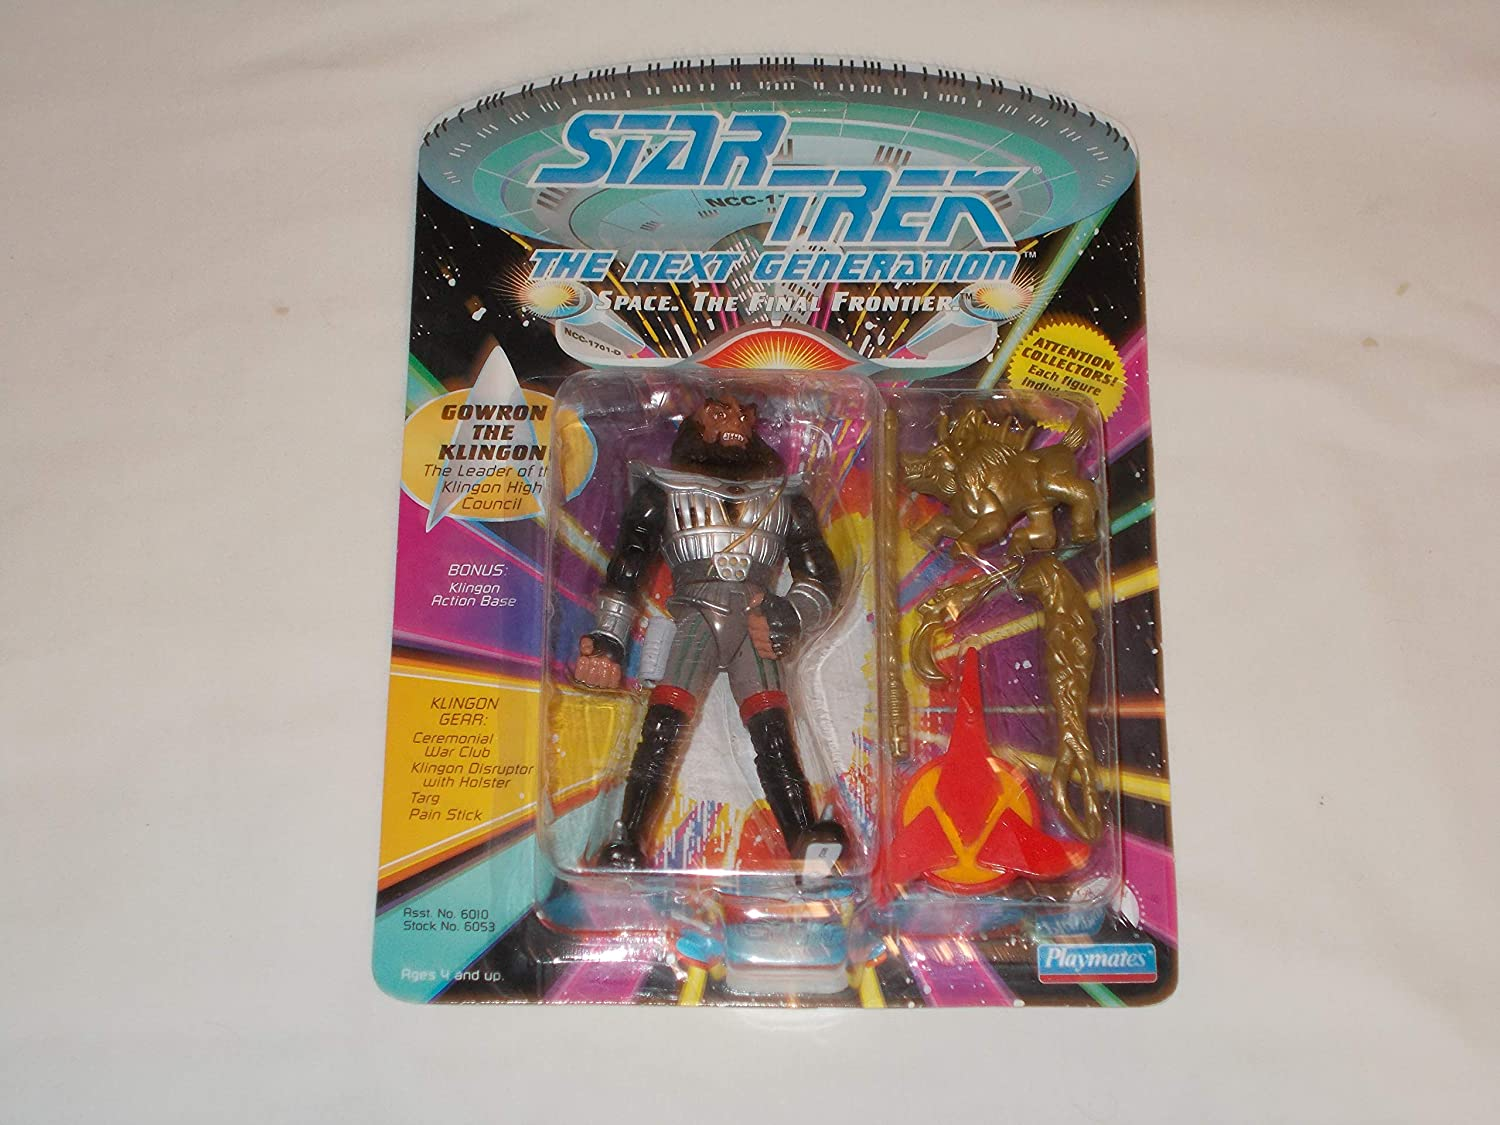 Action Figure Star Trek Next Generation Gowron the Klingon approx 4.5 inch